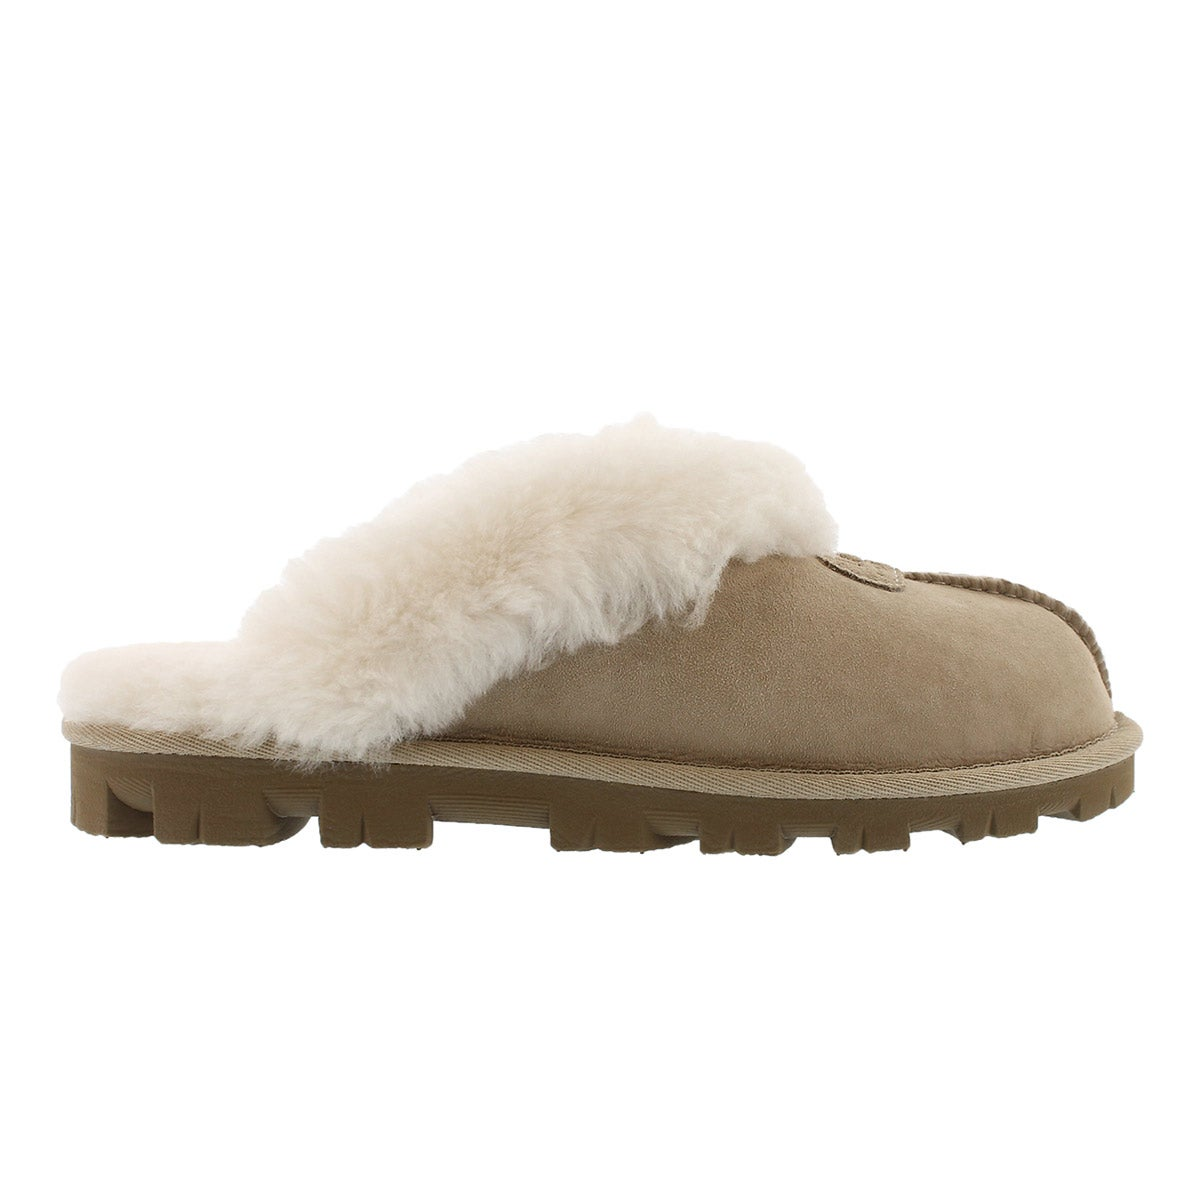 Lds Coquette sand sheepskin slipper